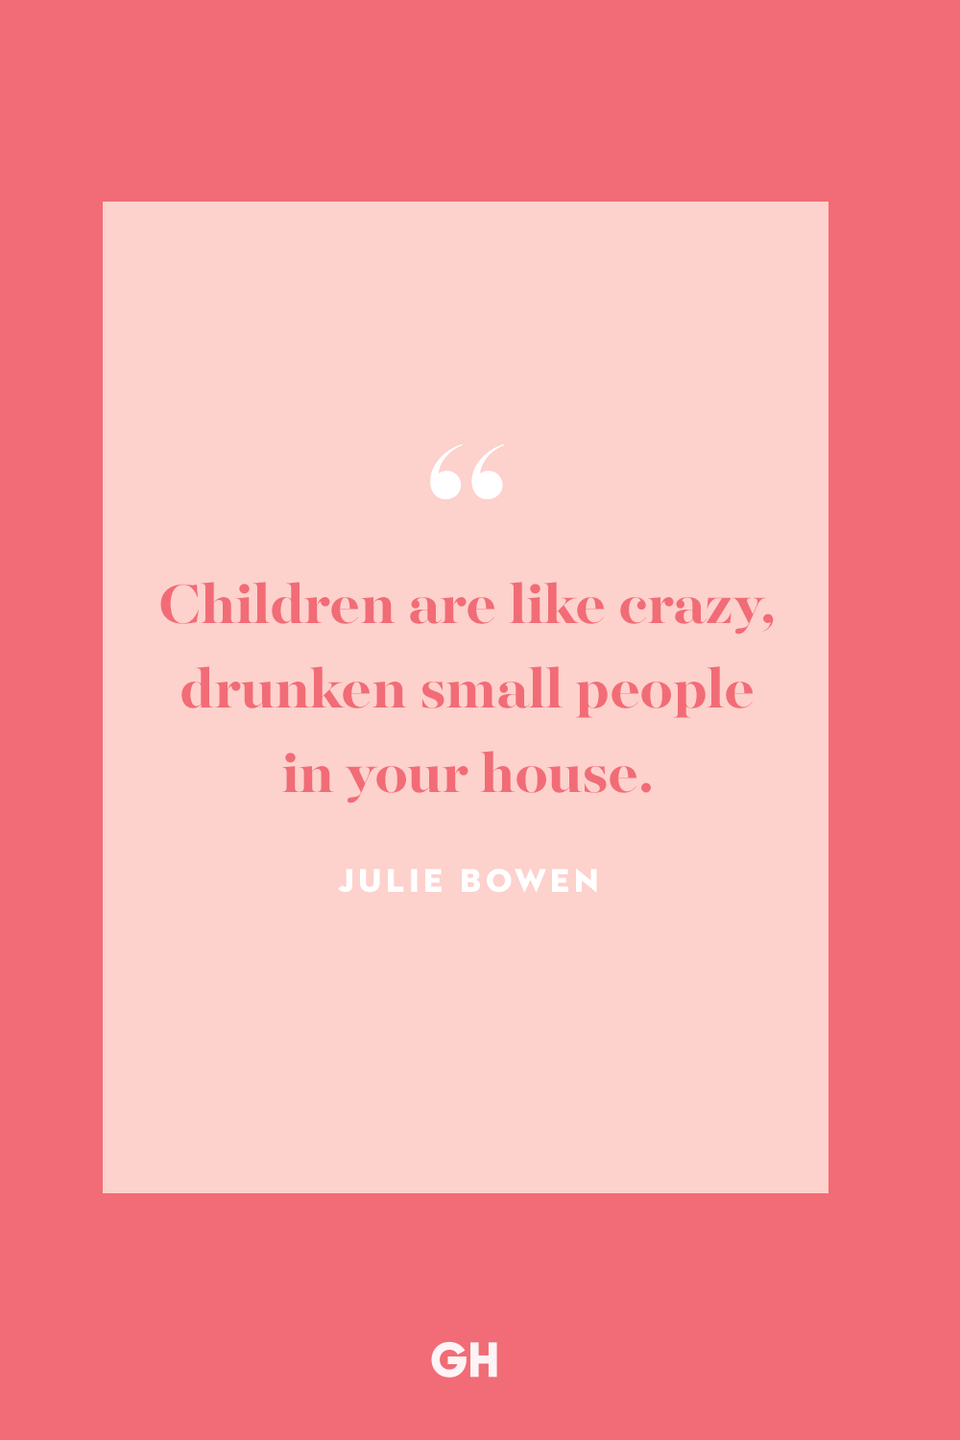 <p>Children are like crazy, drunken small people in your house.</p>